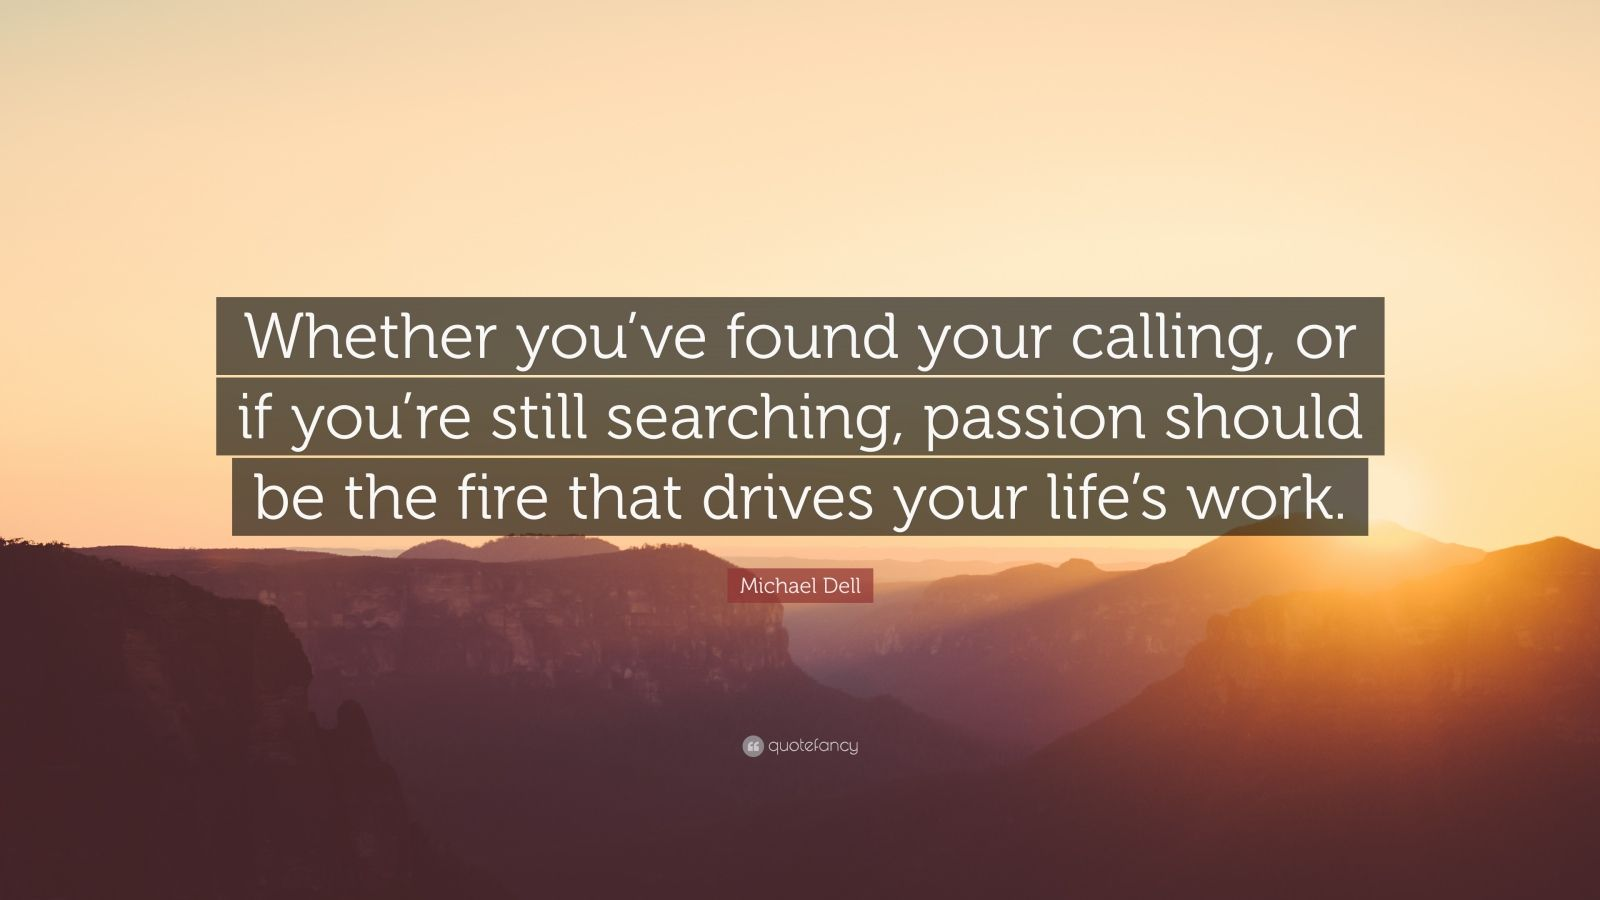 """Michael Dell Quote: """"Whether you've found your calling, or if you're still searching, passion should be the fire that drives your life's work."""""""